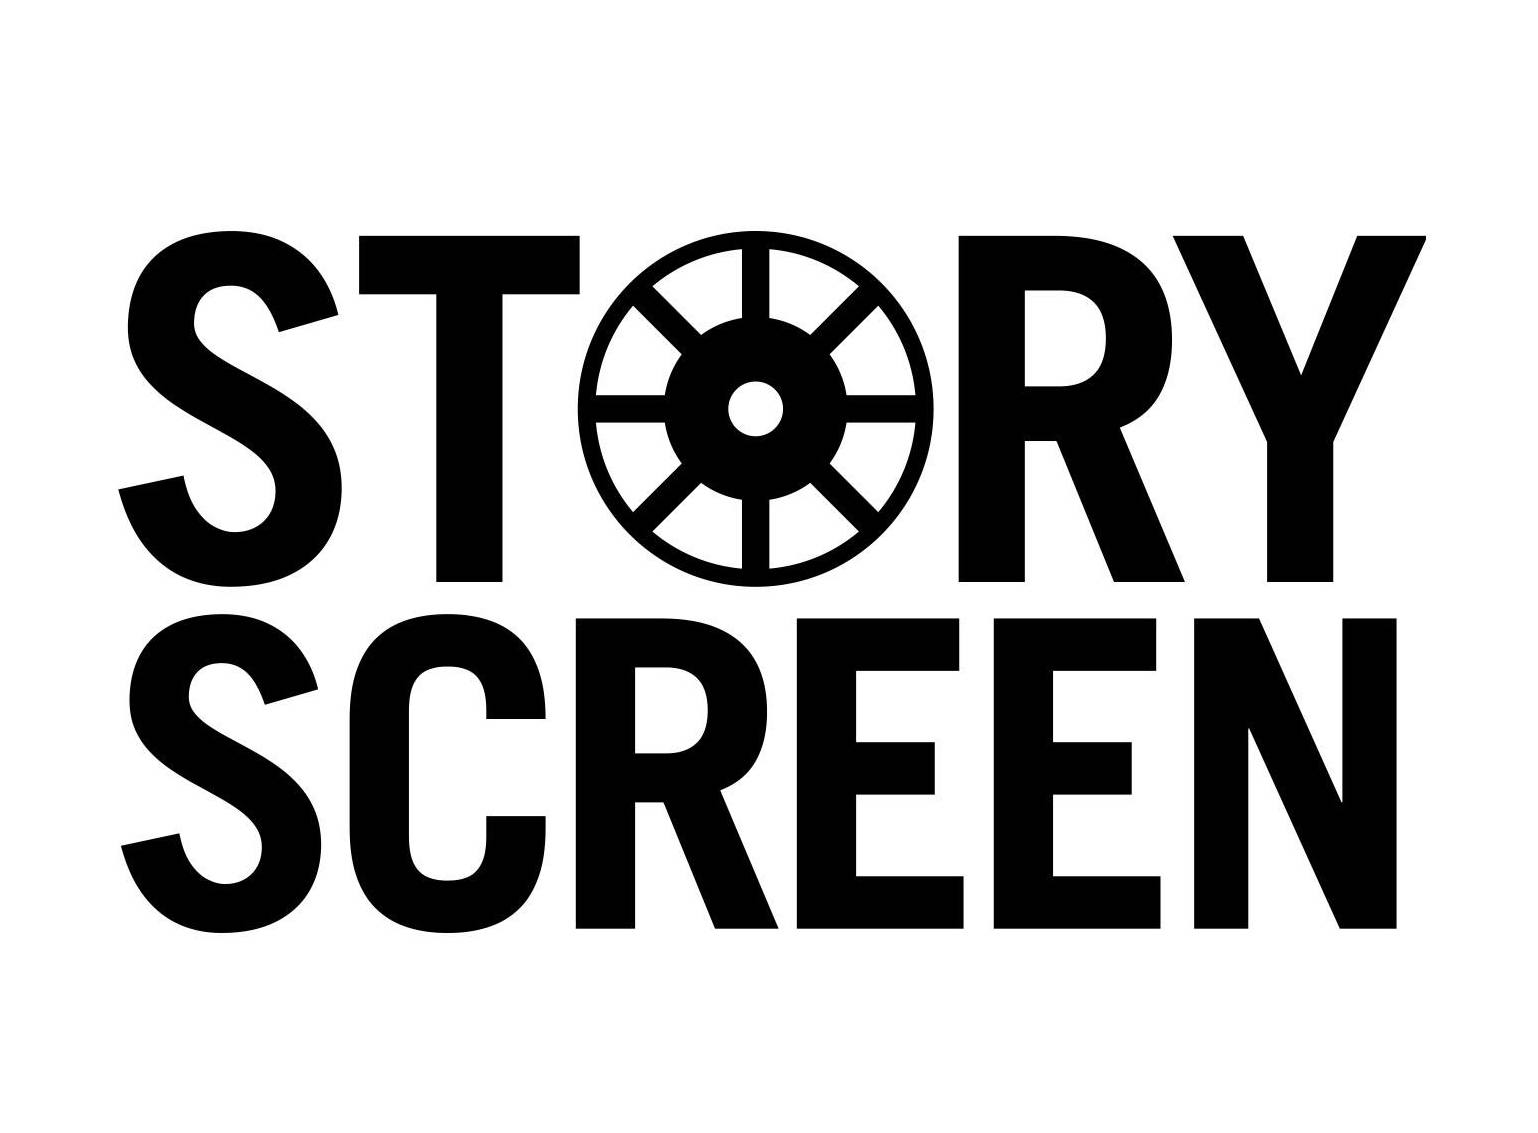 story screen logo.jpg